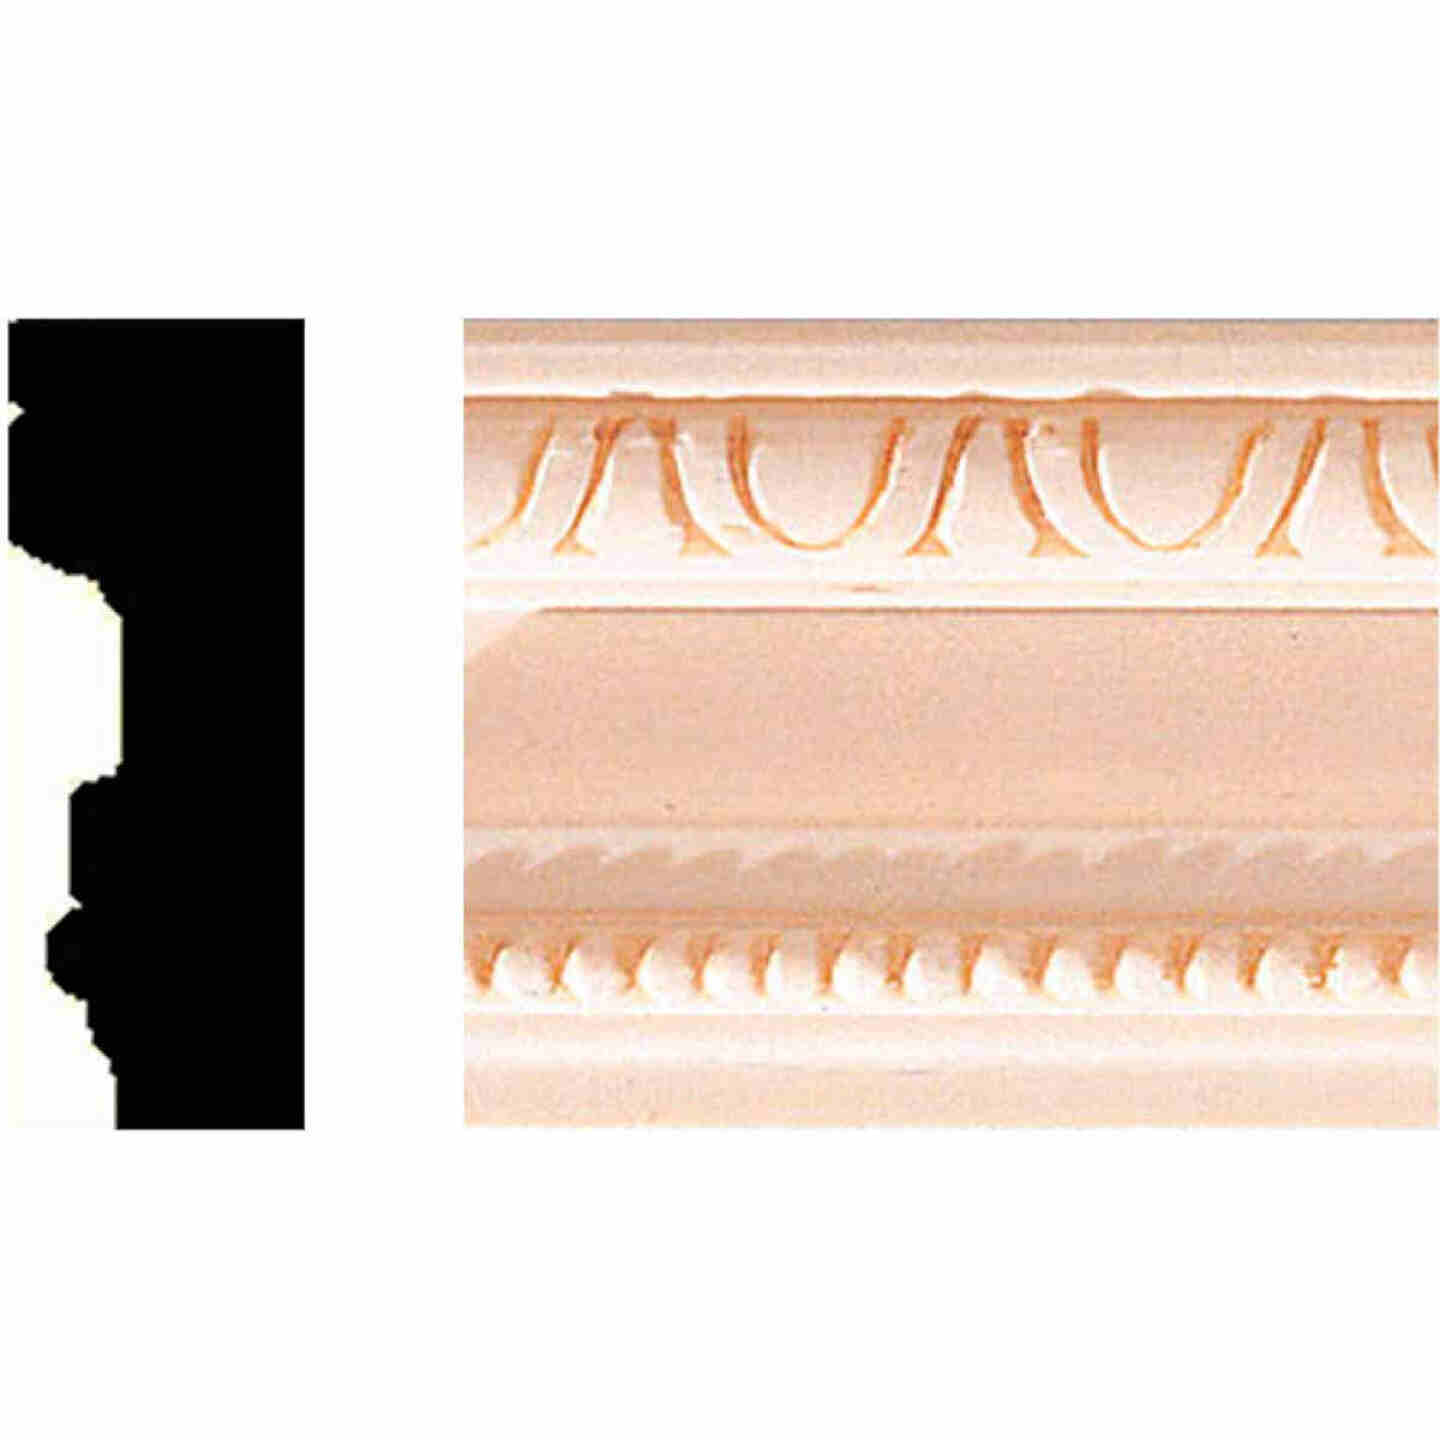 House of Fara 3/4 In. W. x 2 In. H. x 8 Ft. L. Hardwood Scrolled Decorative Chair Rail Molding Image 1